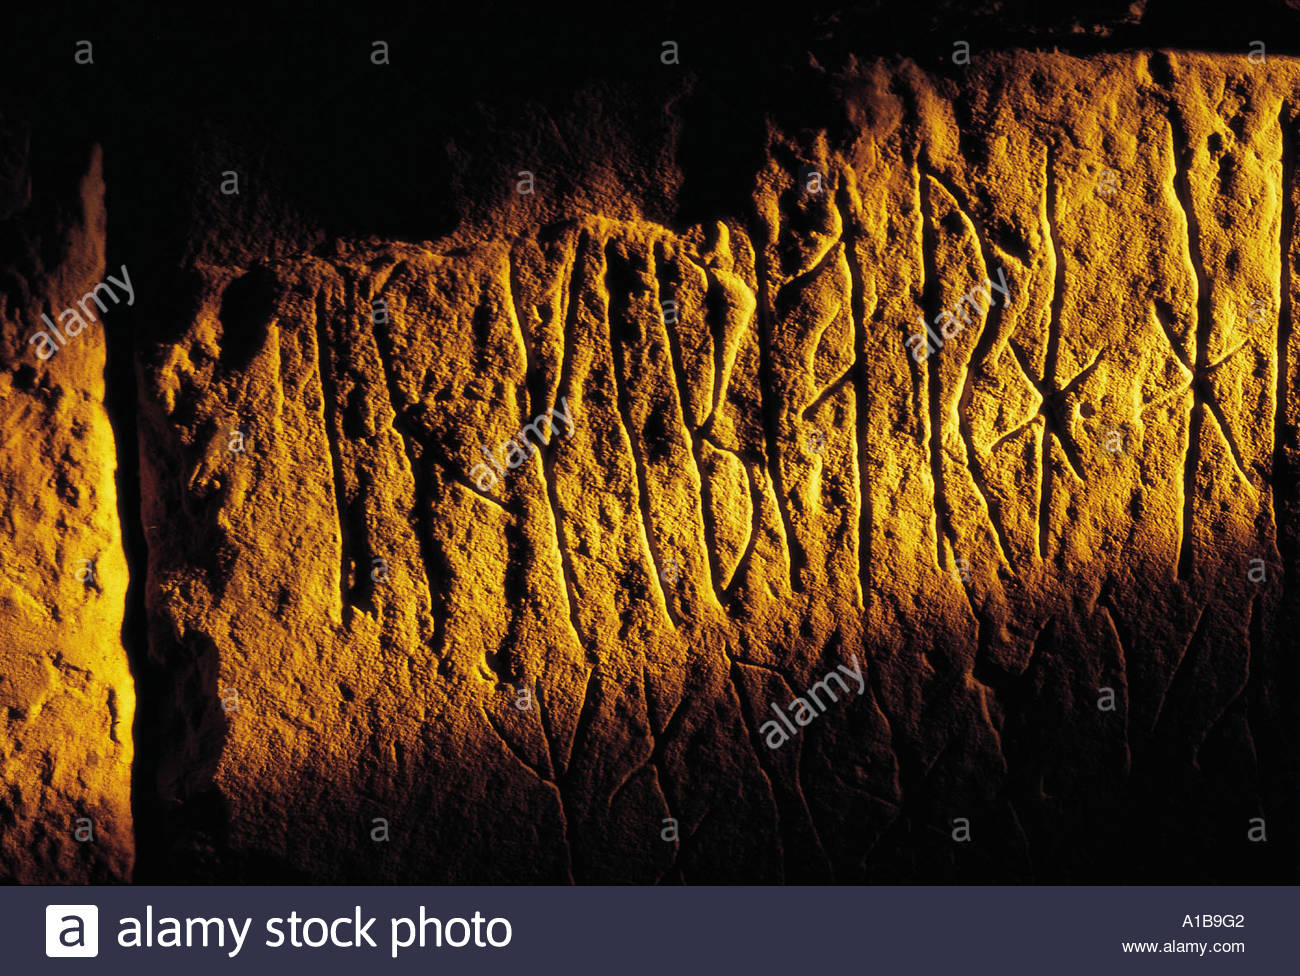 A DETAIL OF THE RUNIC INSCRIPTIONS AT MAES HOWE WEST OF FINSTOWN MAINLAND ORKNEY - Stock Image